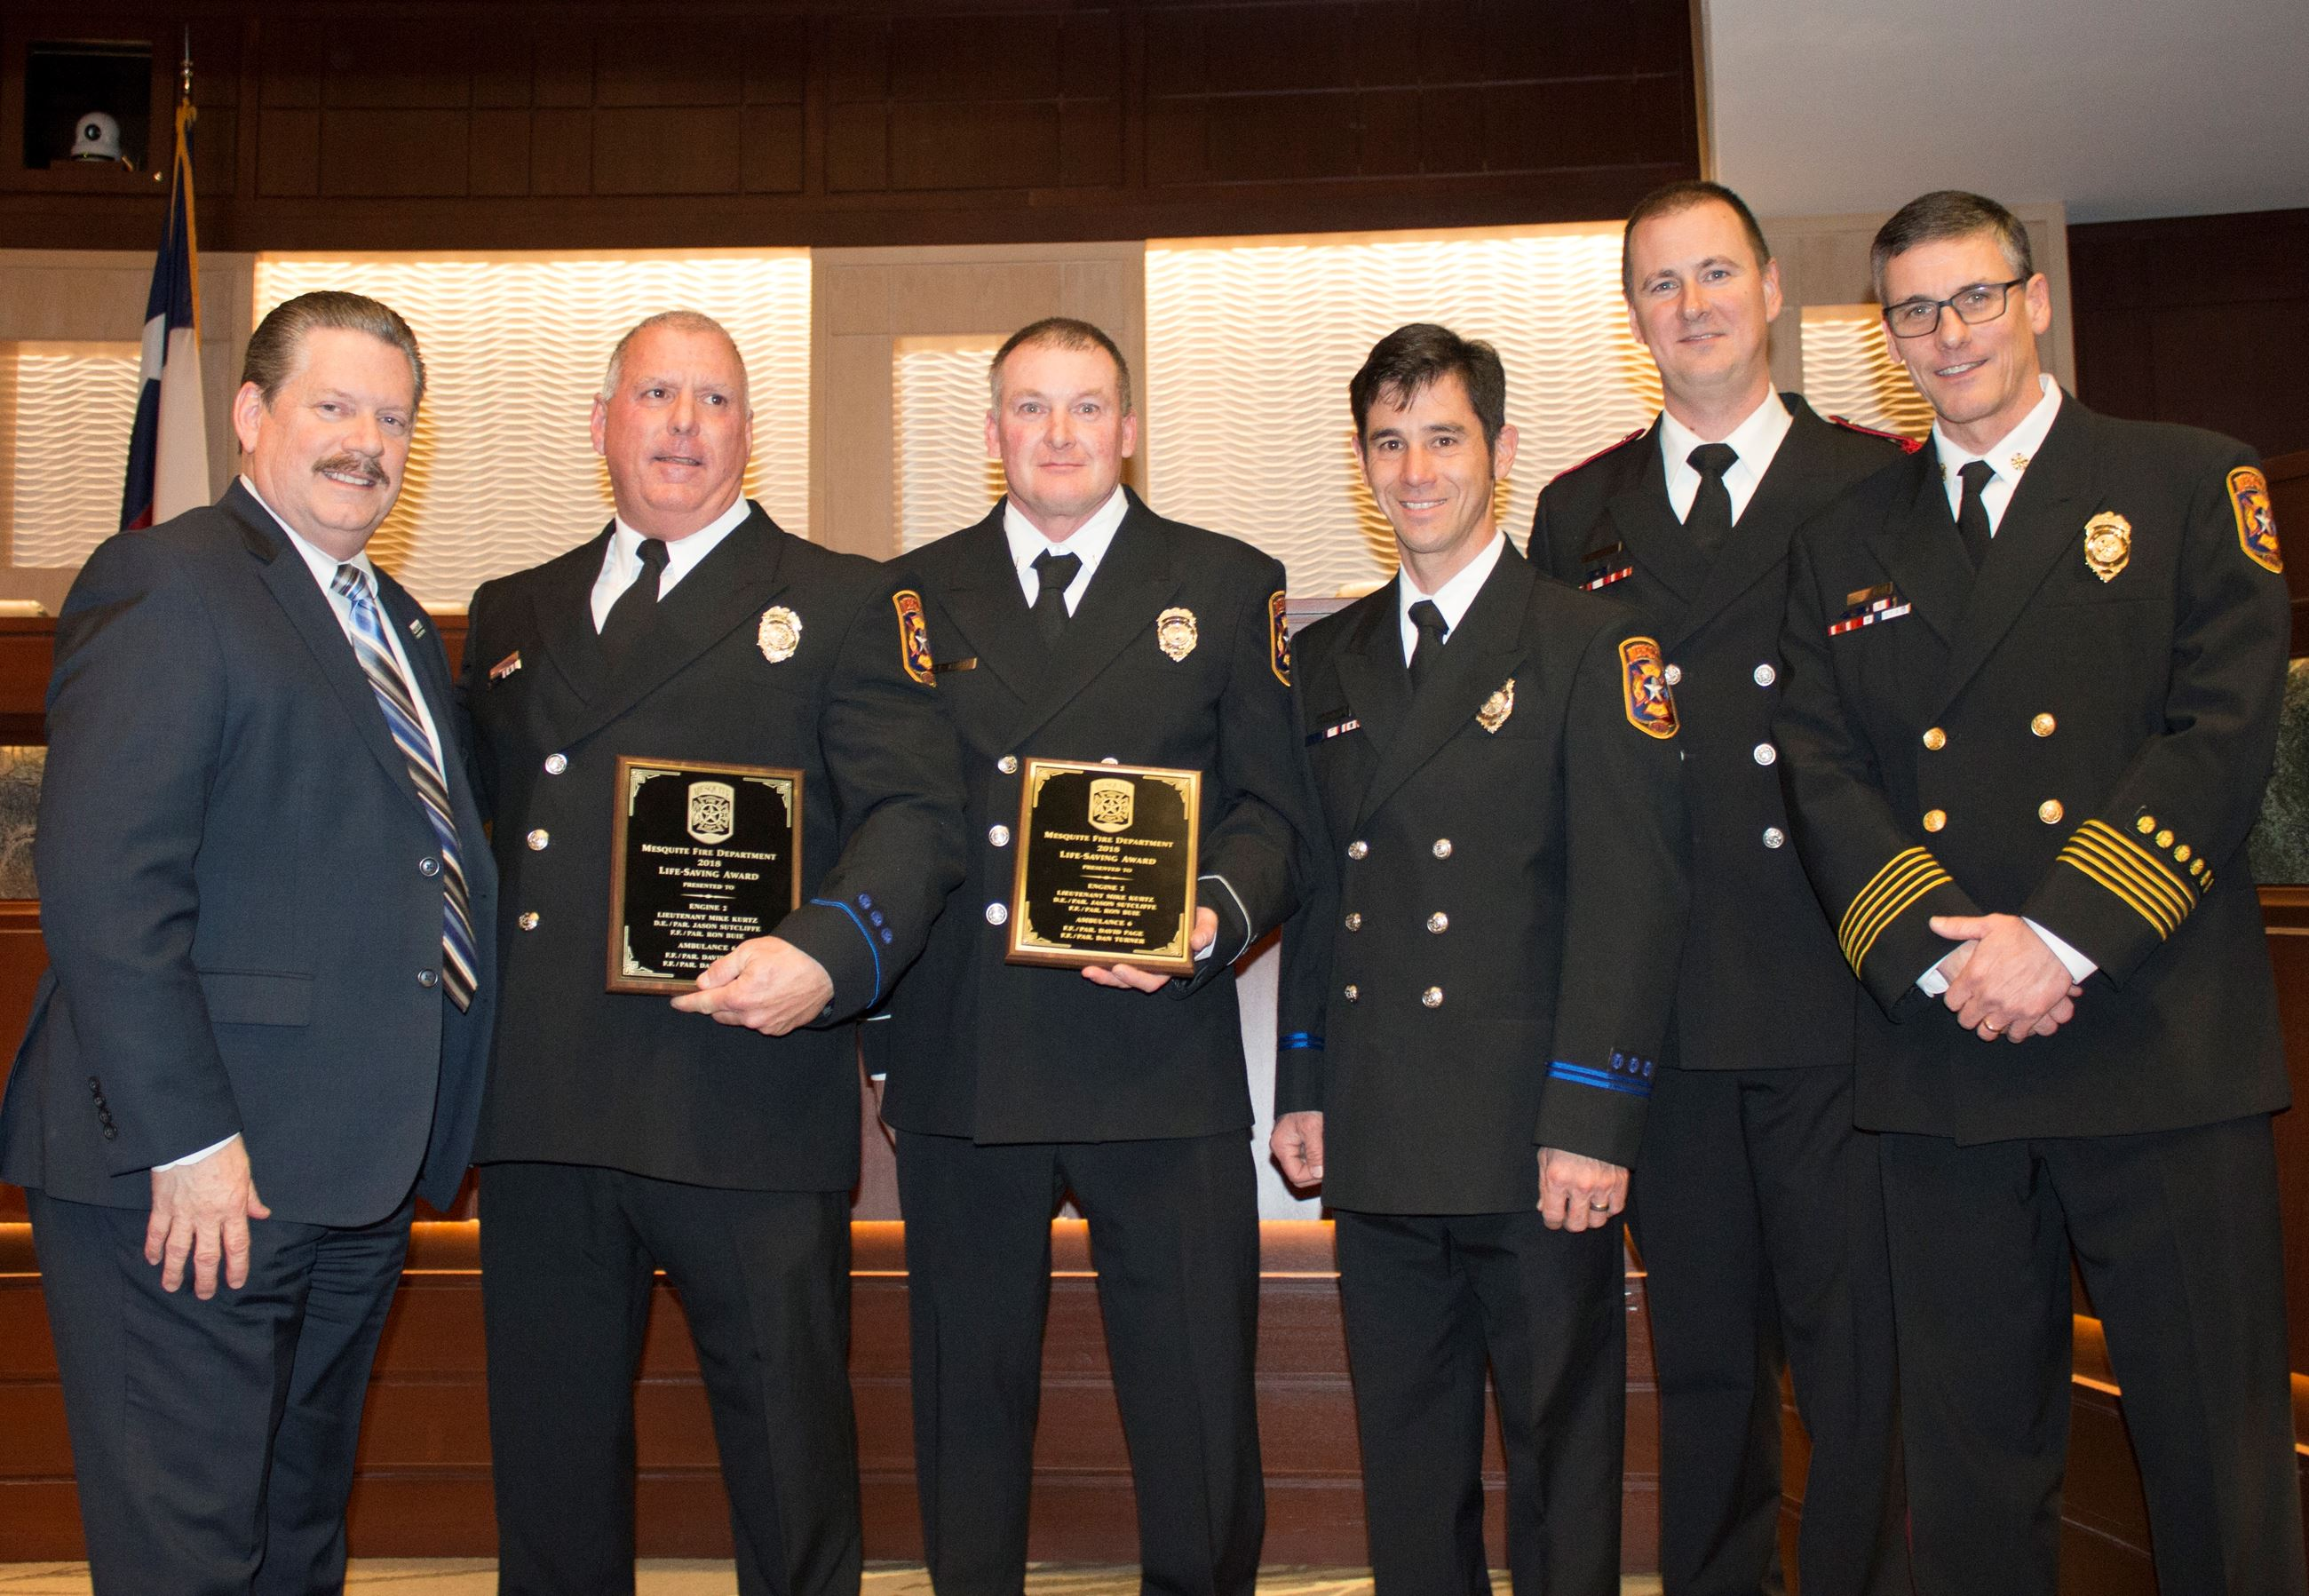 2018 Fire Awards LifeSaving 1 April 16 2017